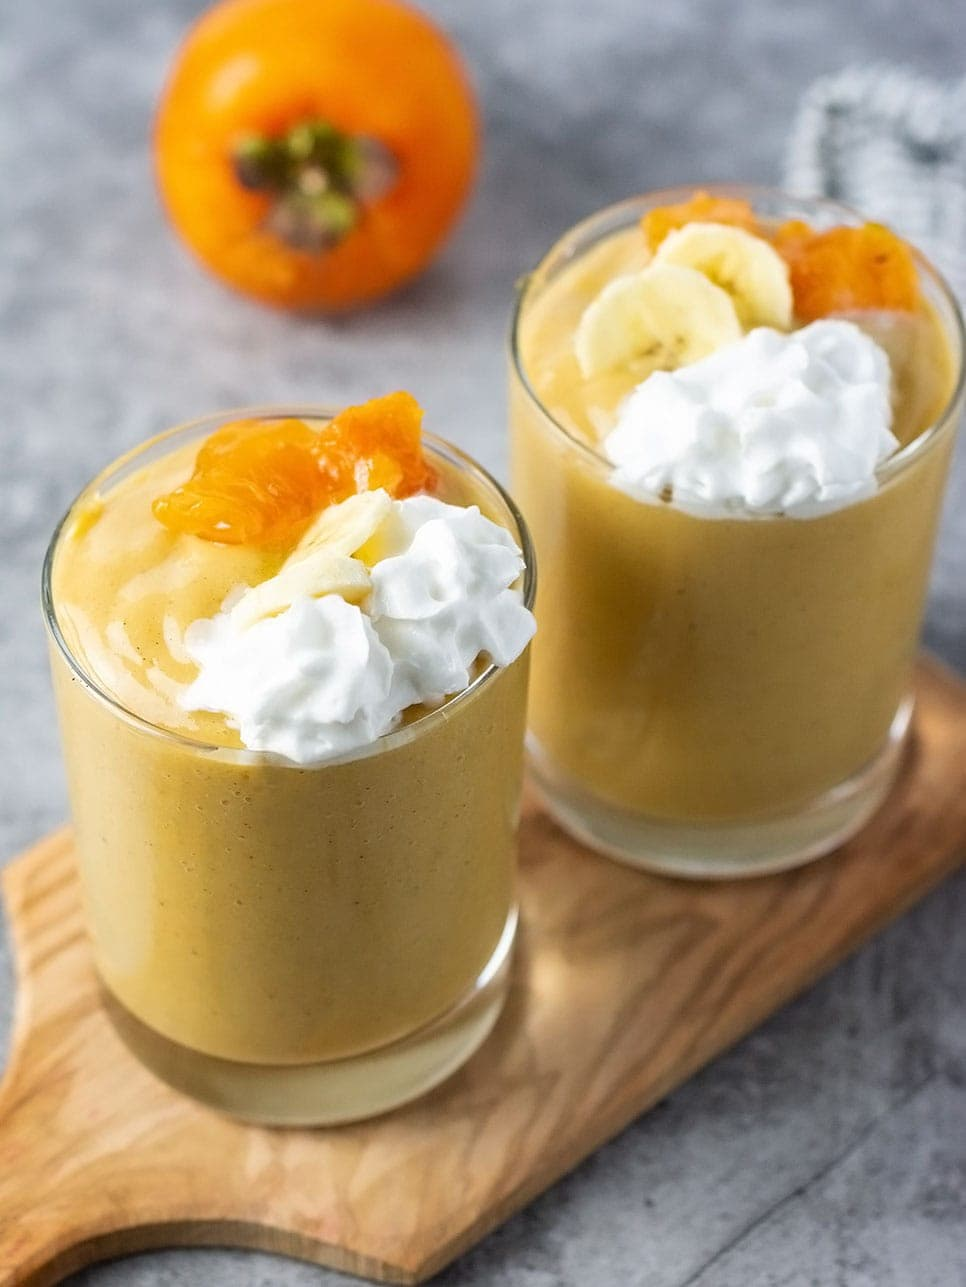 Persimmon smoothie in 2 glasses on wooden cutting board garnished with whipped cream and persimmon